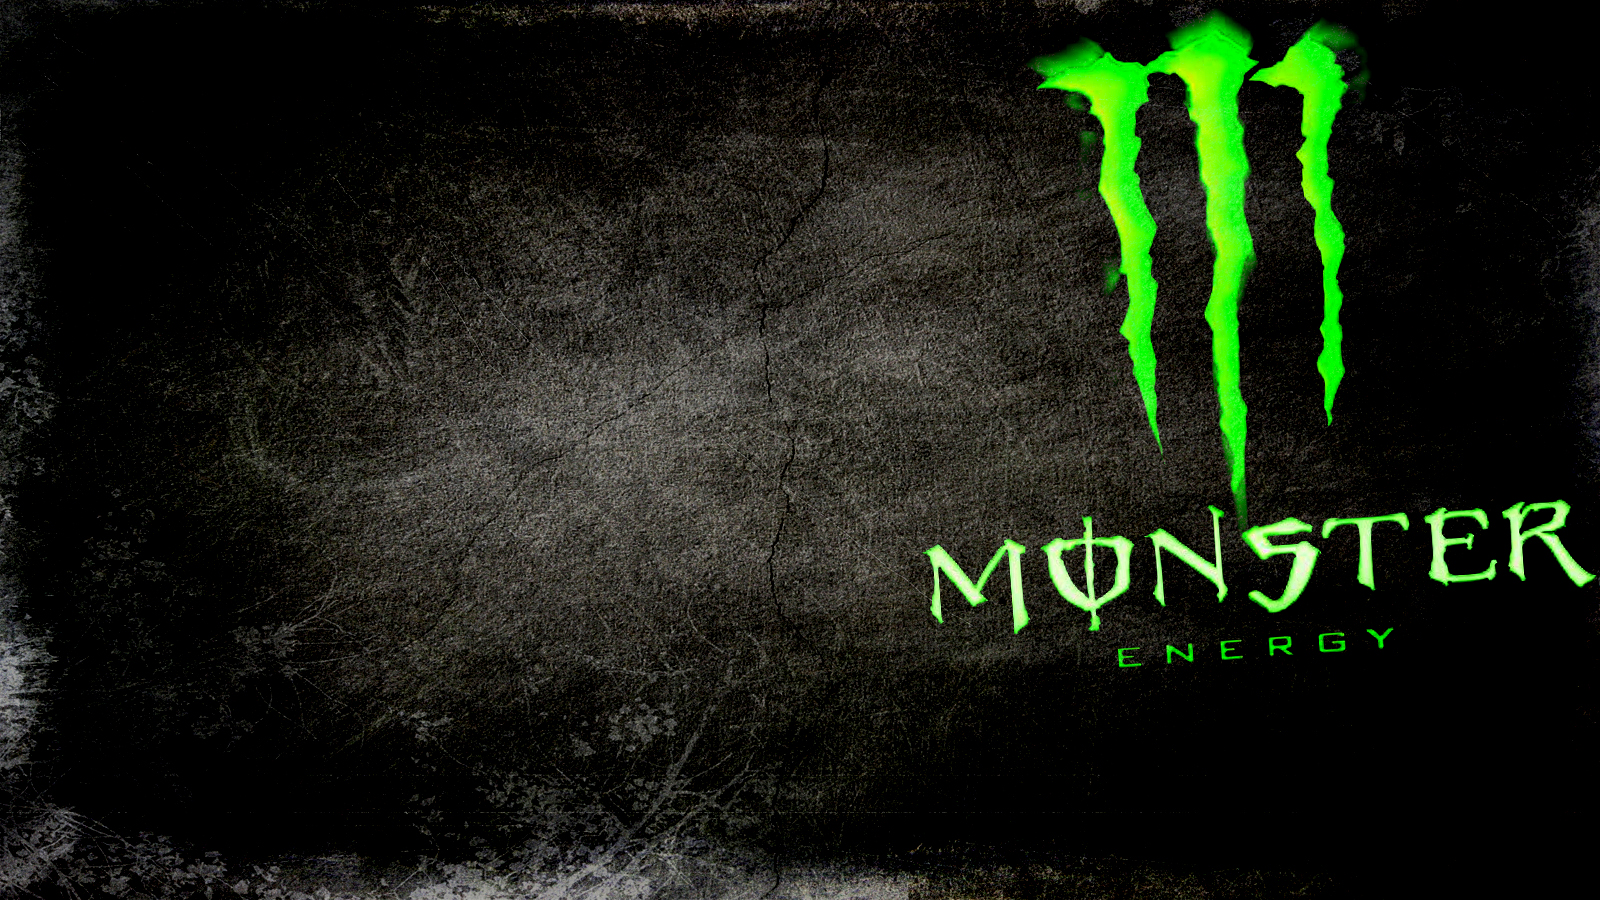 Download image Monster Energy Dc Wallpaper Desktop PC Android iPhone 1600x900